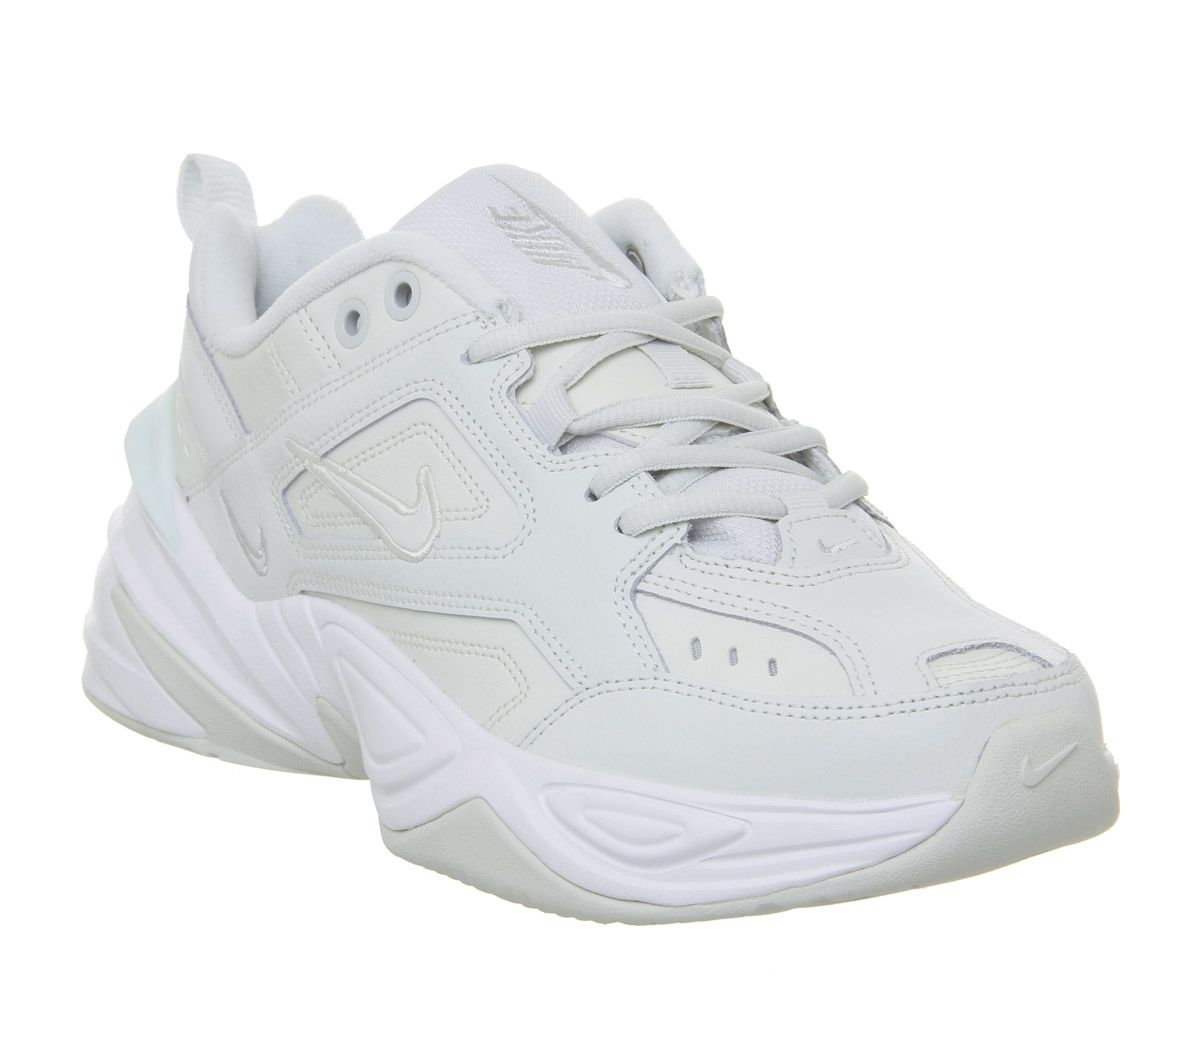 cheap for discount 938de 14d17 Nike M2k Tekno Trainers Spruce Aura Sail Summit White F - Hers trainers